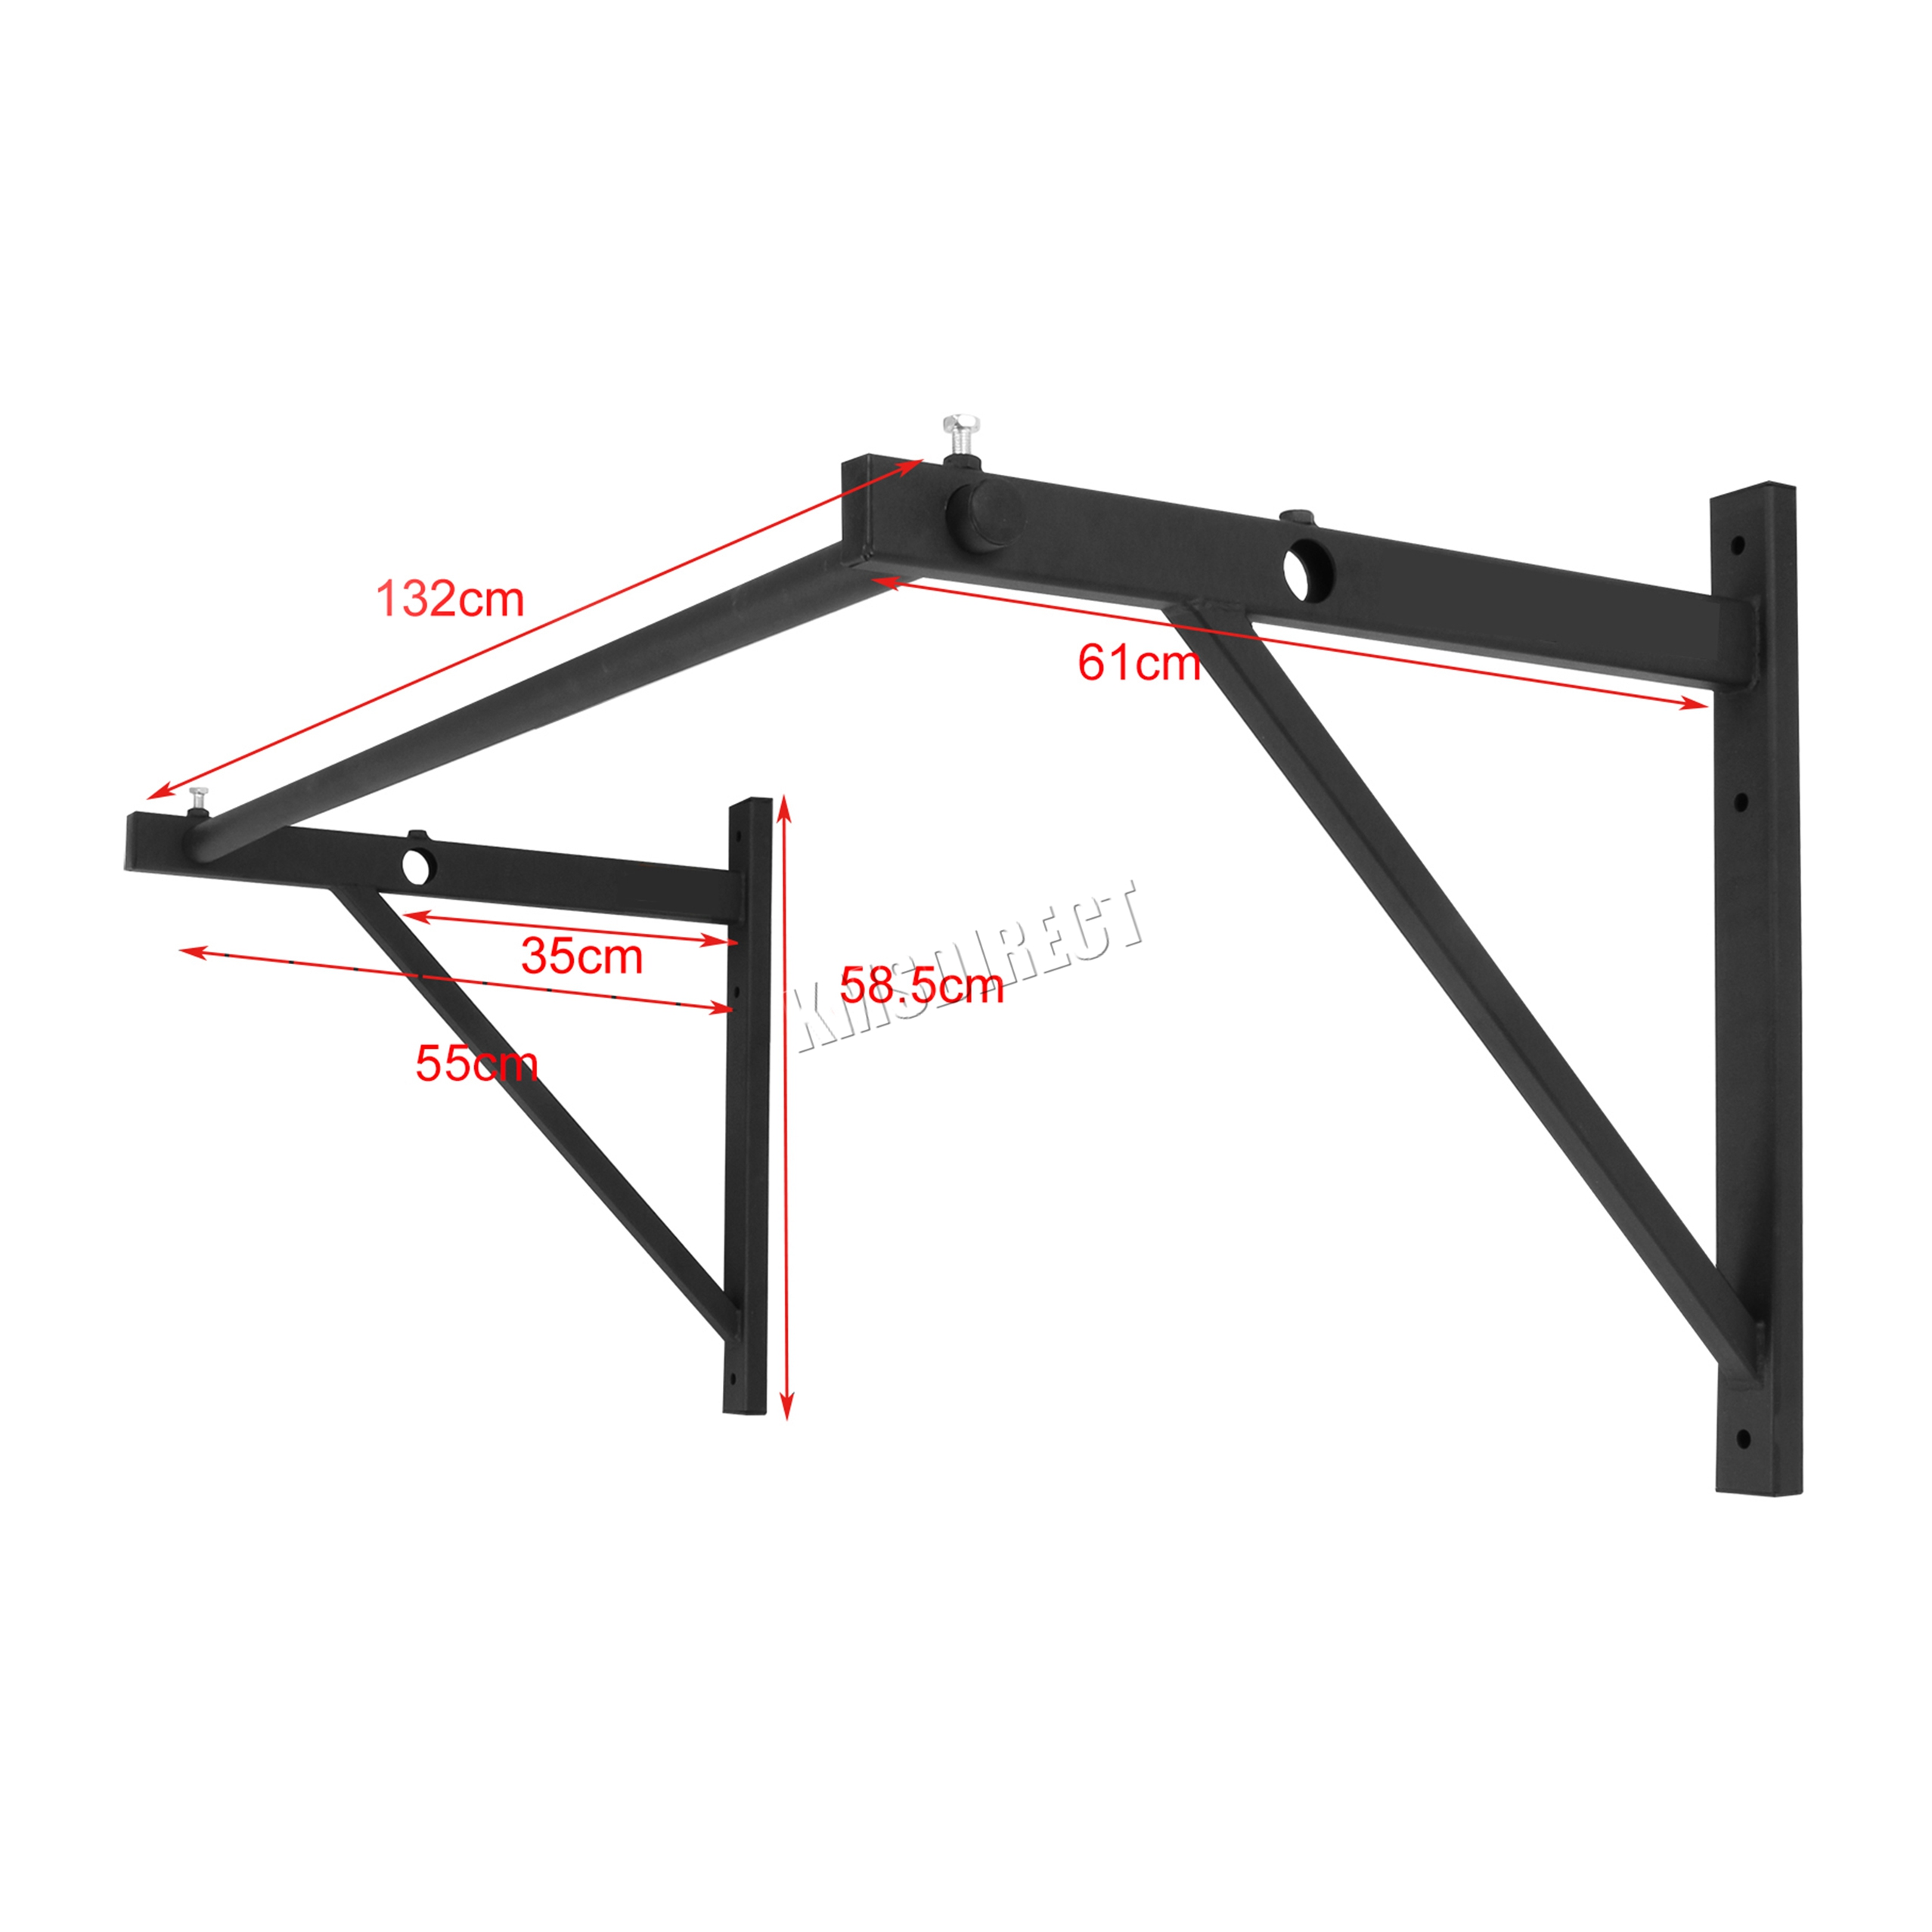 frame bar bodyweight up door beam training cubeamkbotbund mounting chin cross strength pull bottom systems kit